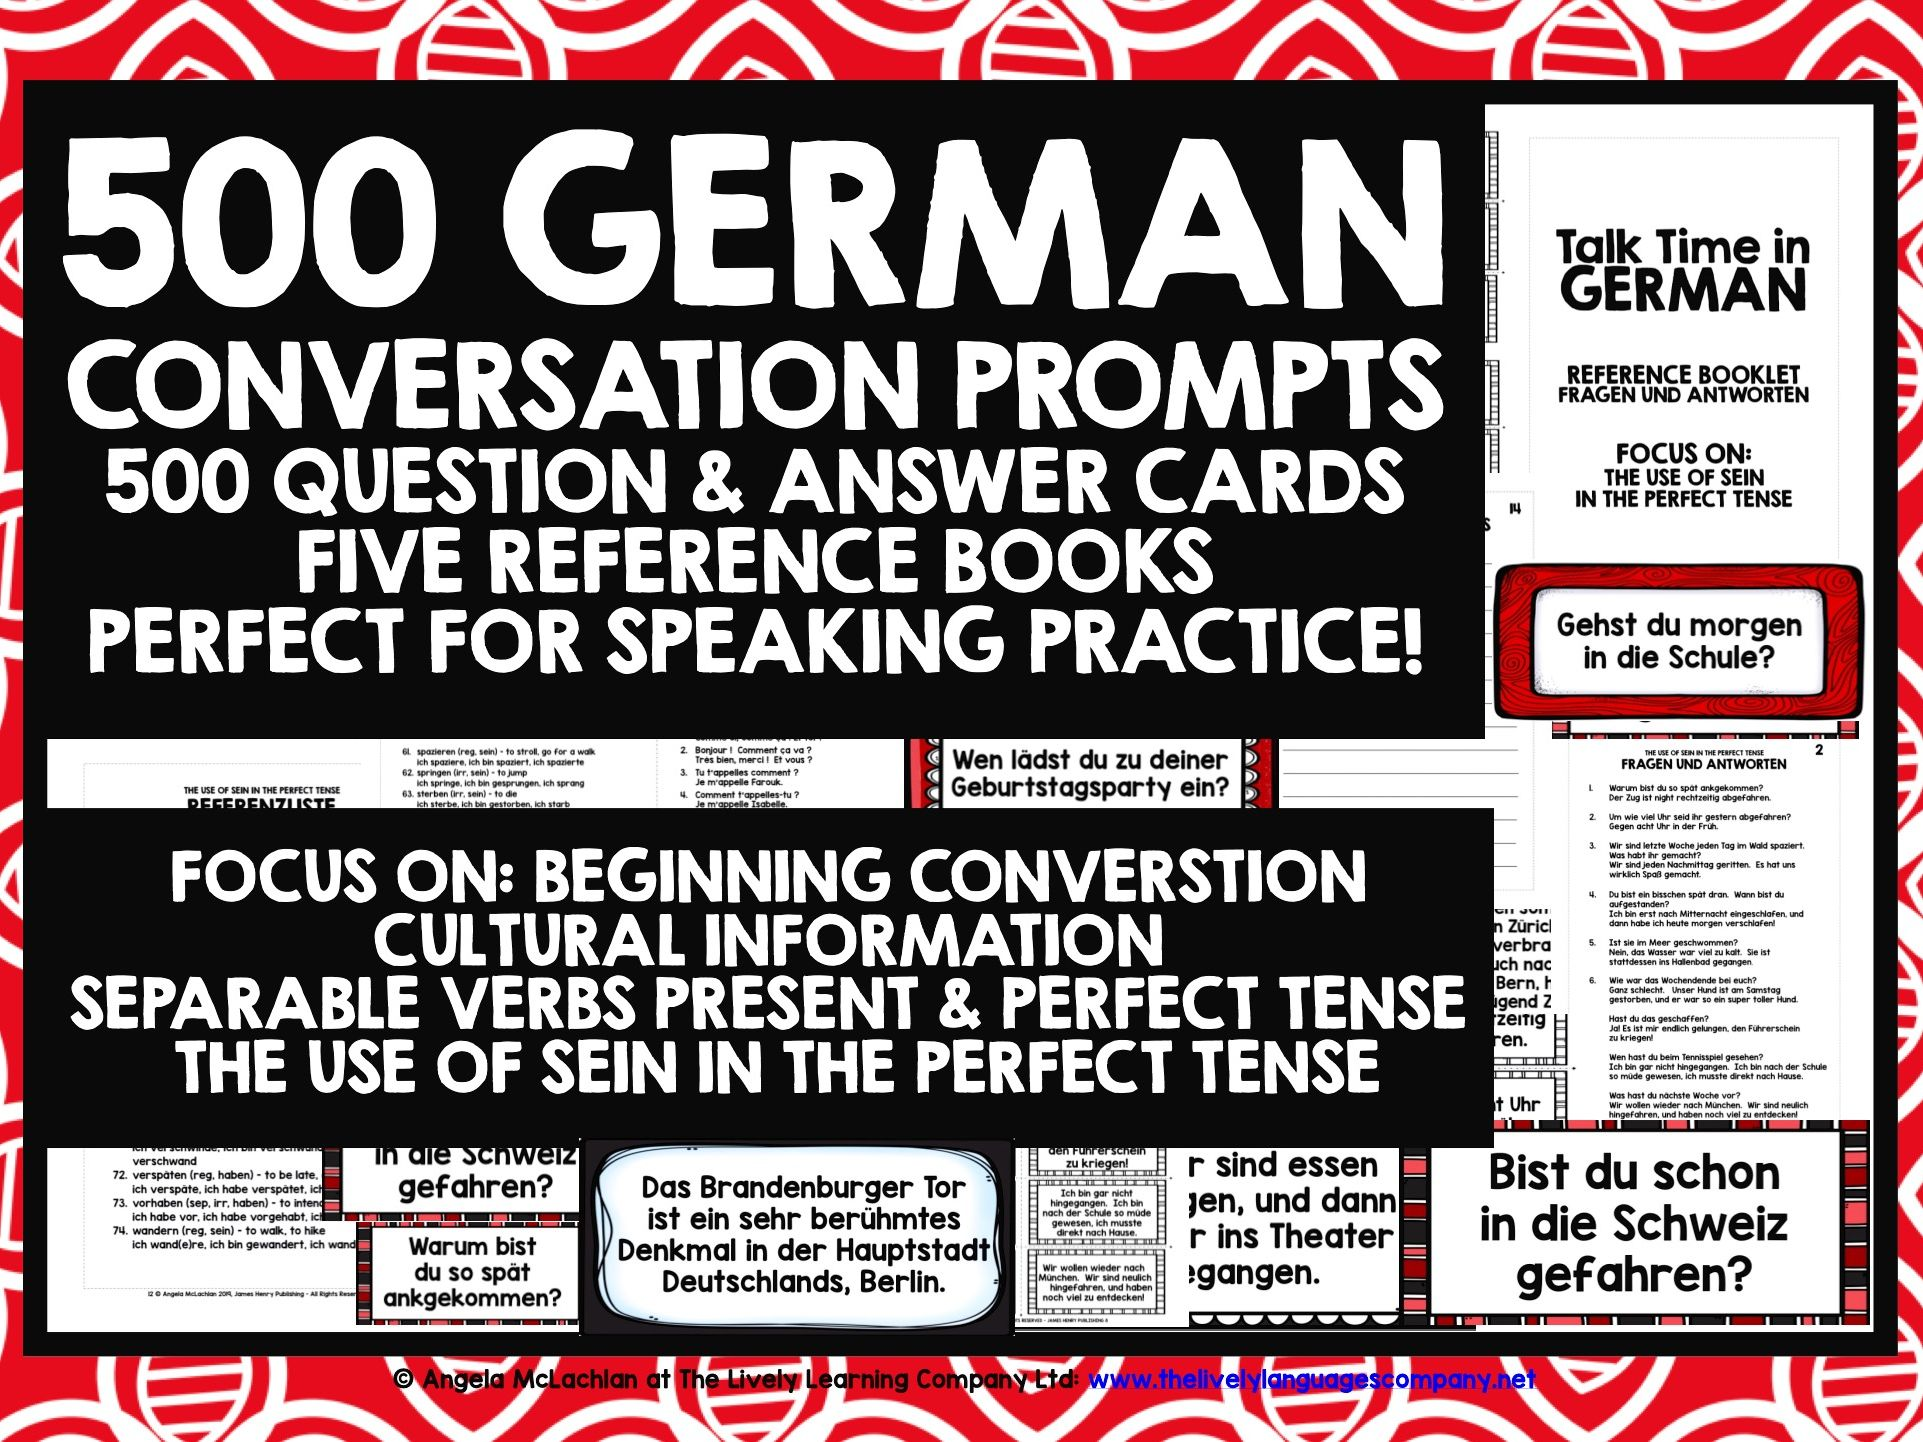 GERMAN SPEAKING PROMPTS 500 QUESTION & ANSWER CARDS